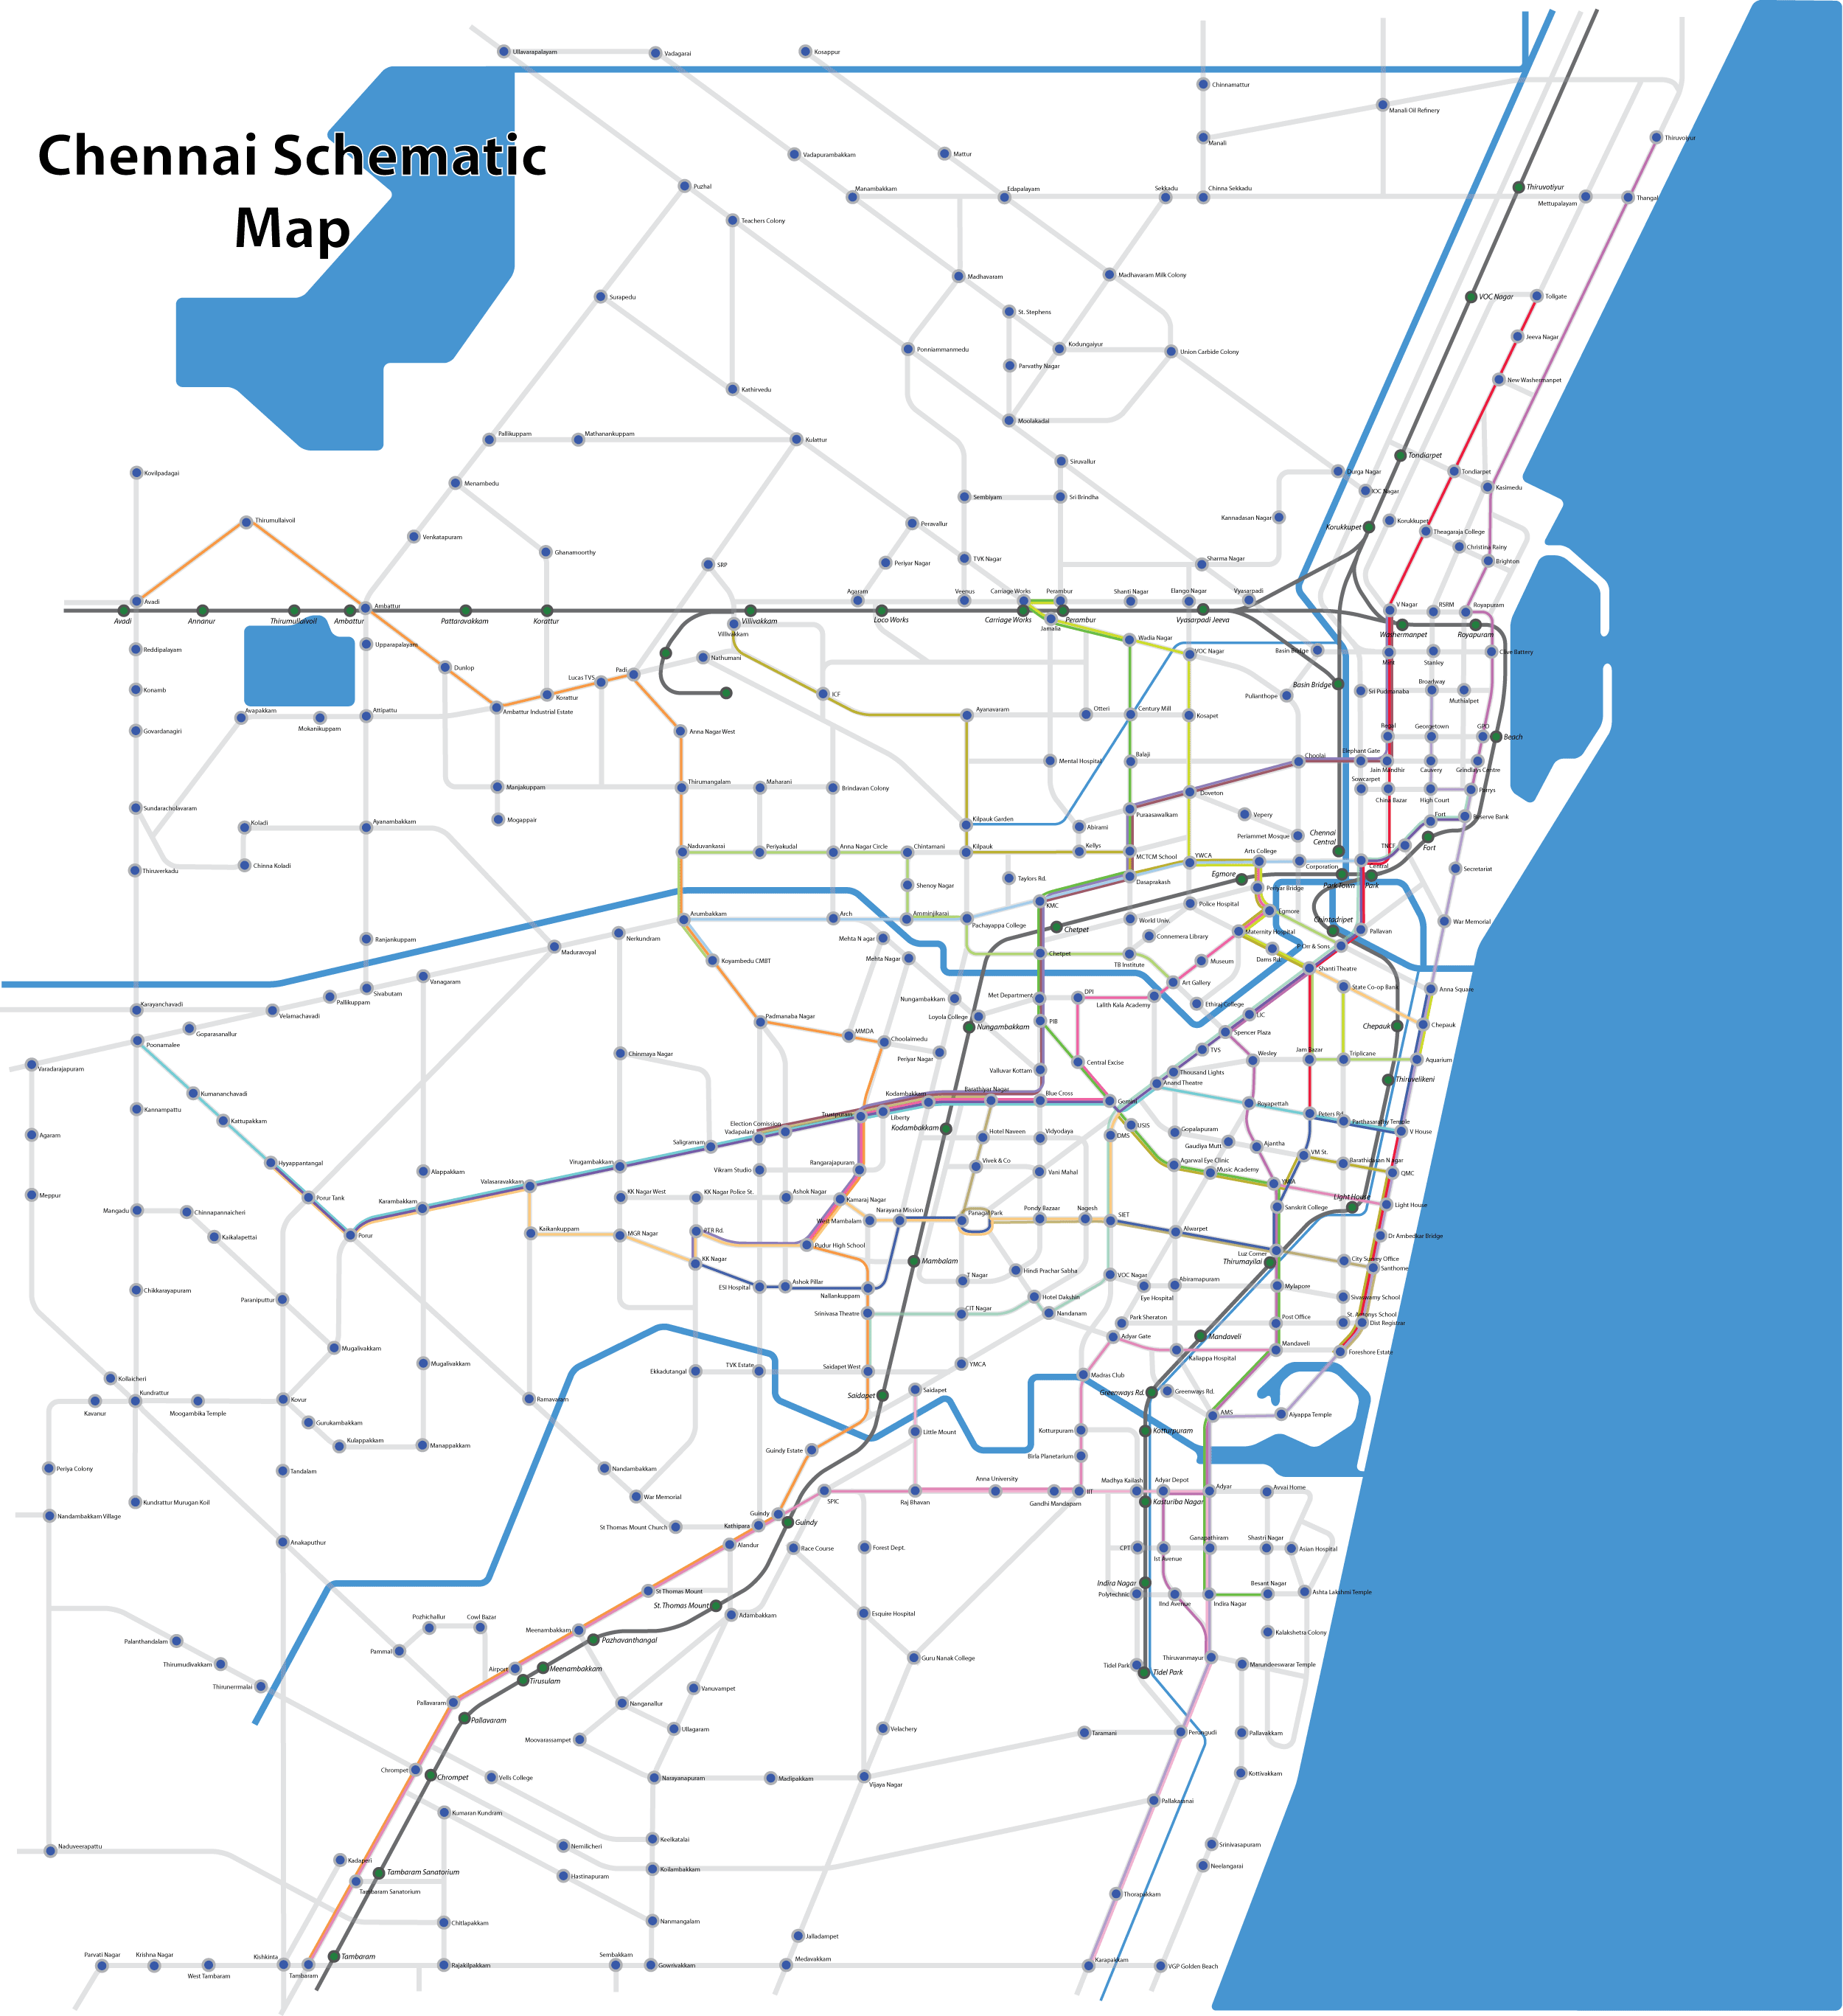 File:Chennai schematic bus map.png - Wikimedia Commons